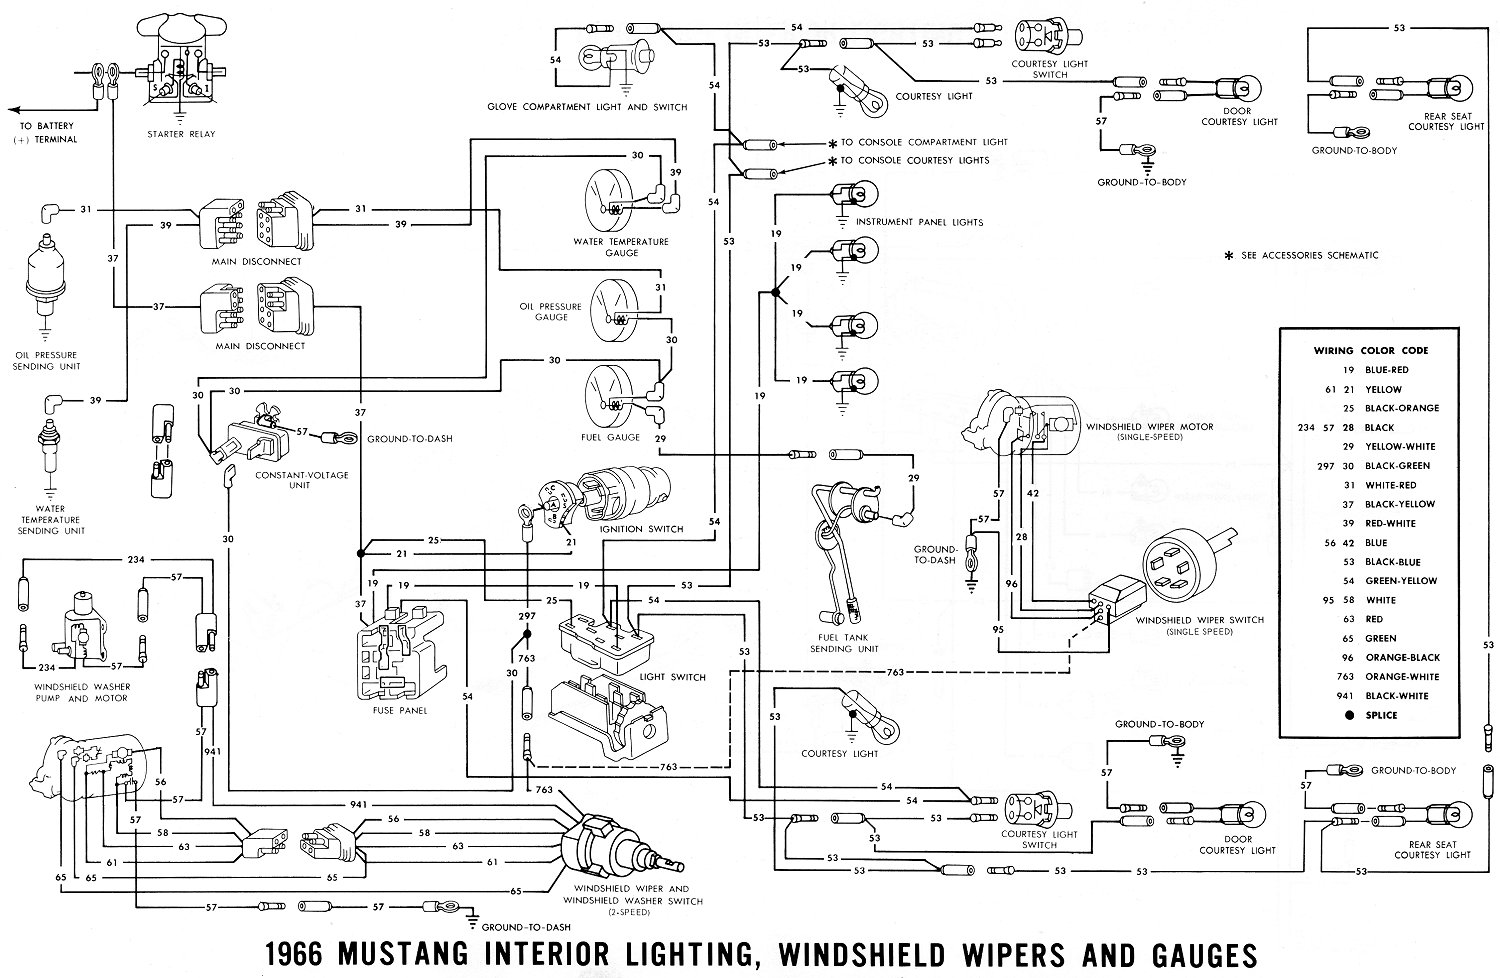 hight resolution of 1966 mustang wiring diagrams average joe restoration rh averagejoerestoration com 1966 mustang reverse light wiring 1966